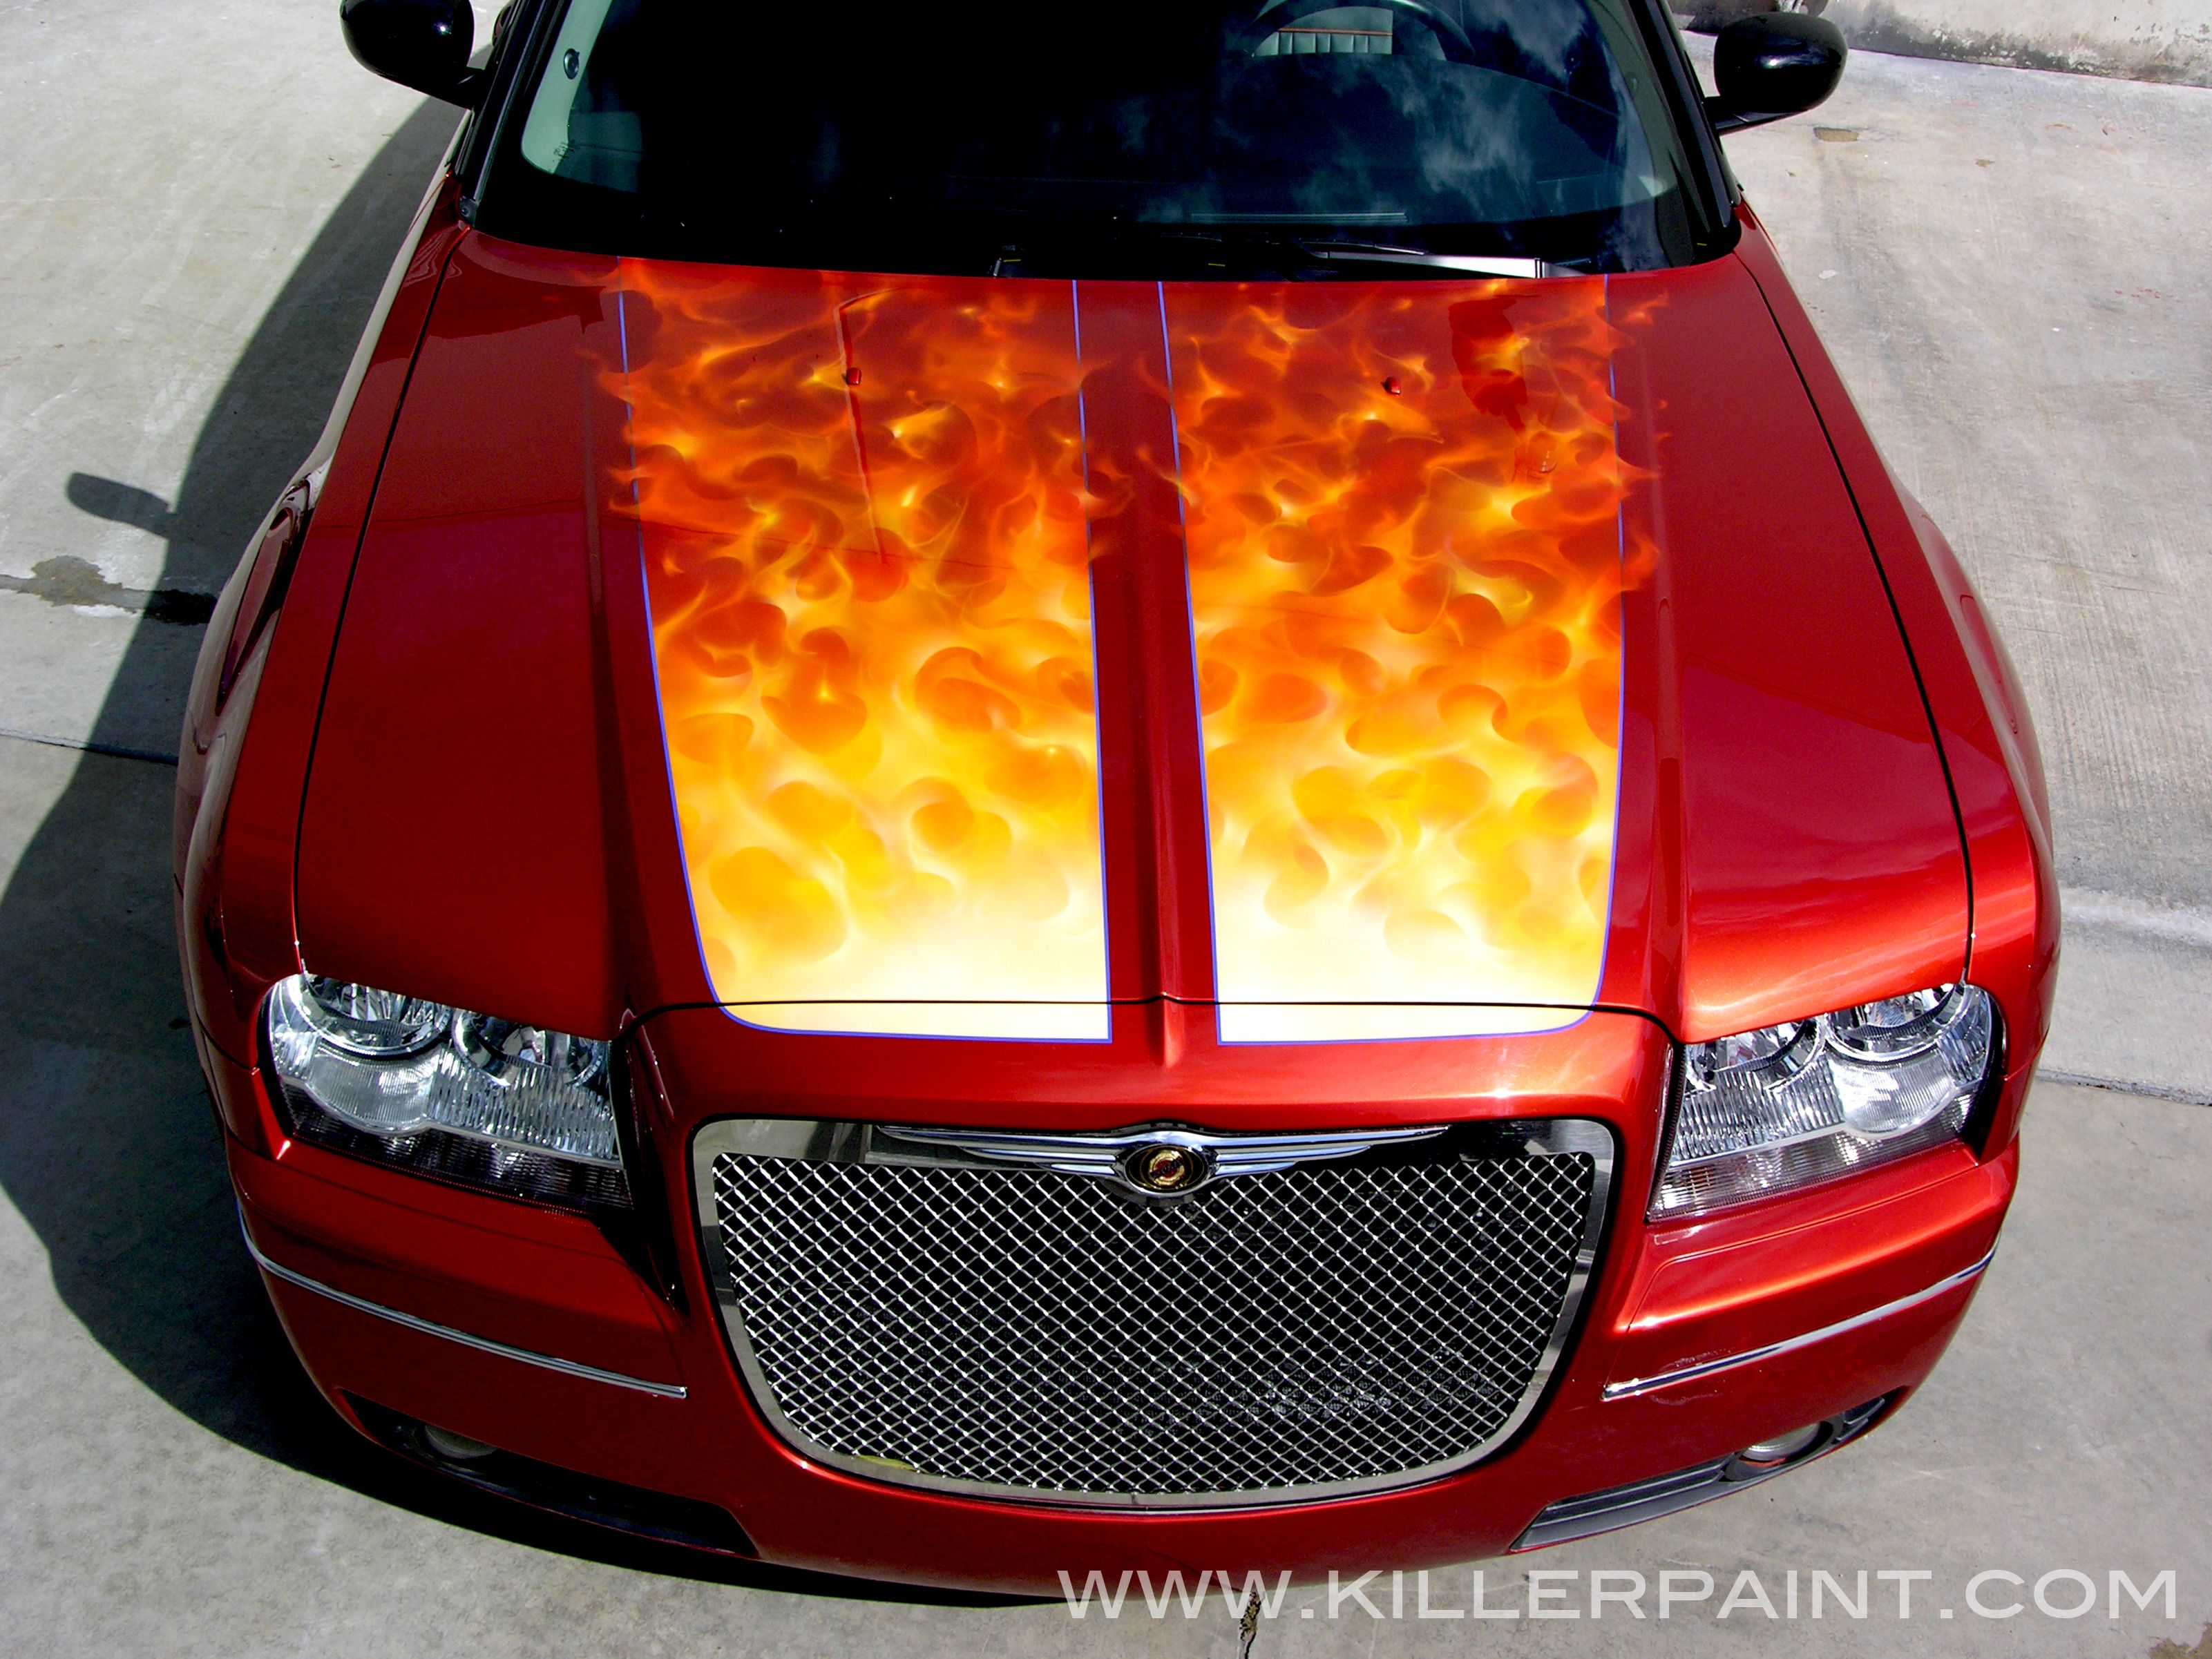 Best Mike Lavalle Da Killer Paint Images On Pinterest - Custom vinyl decals for rc carsimages of cars painted with flames true fire flames on rc car